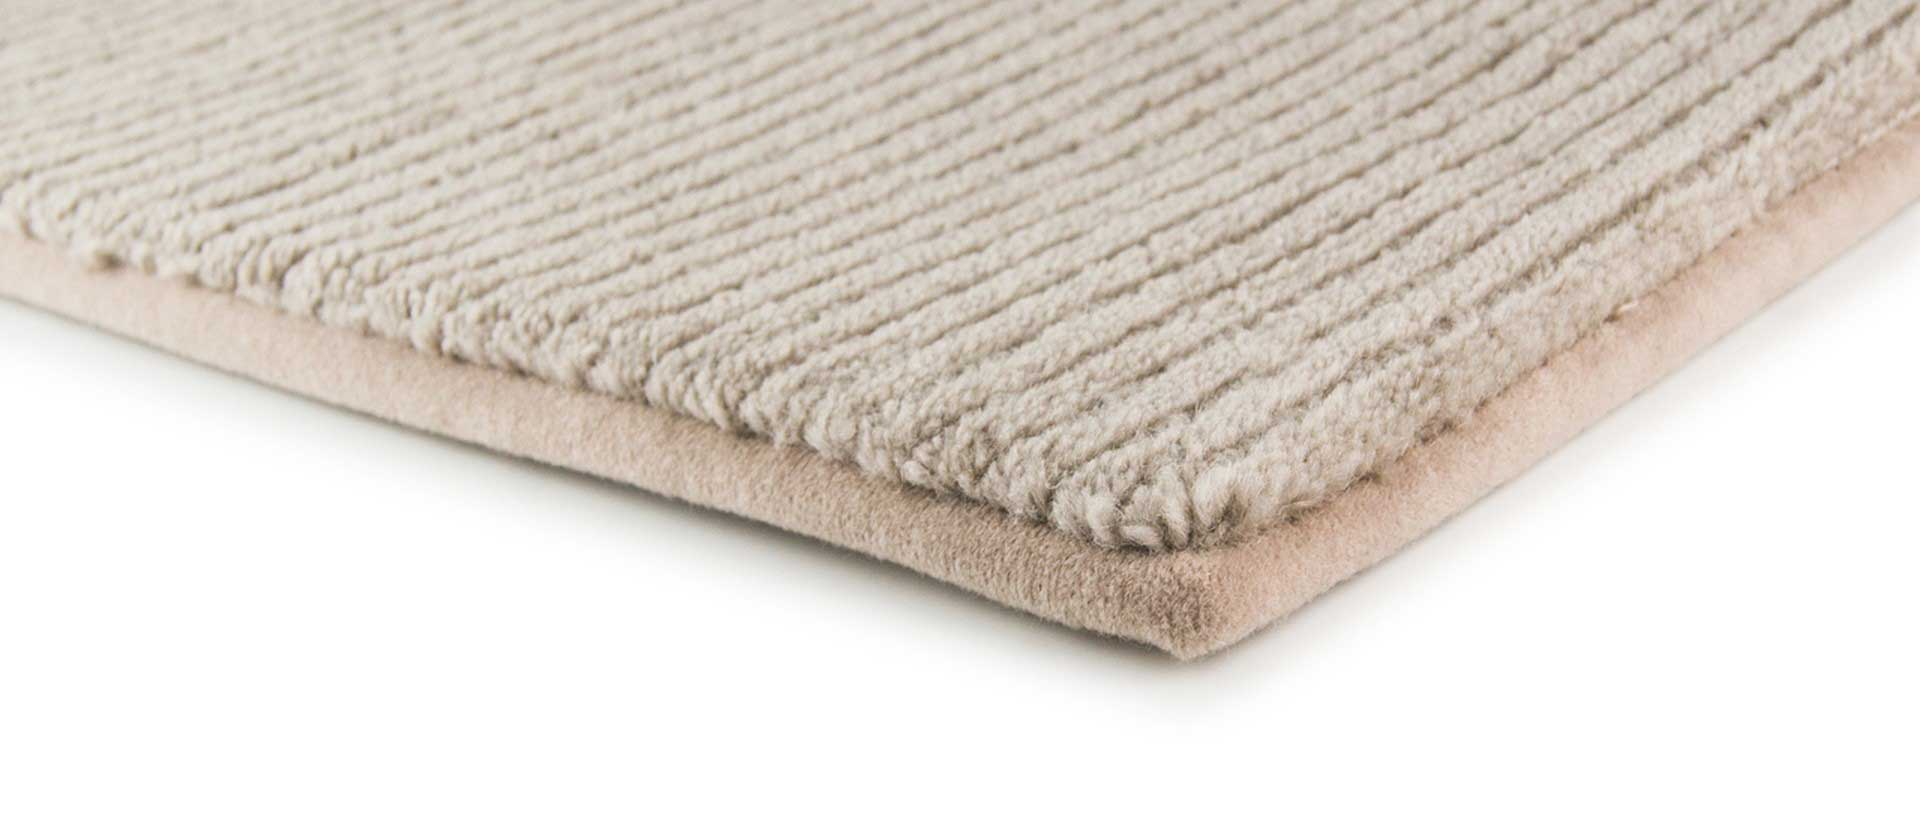 Wool carpet 100% natural